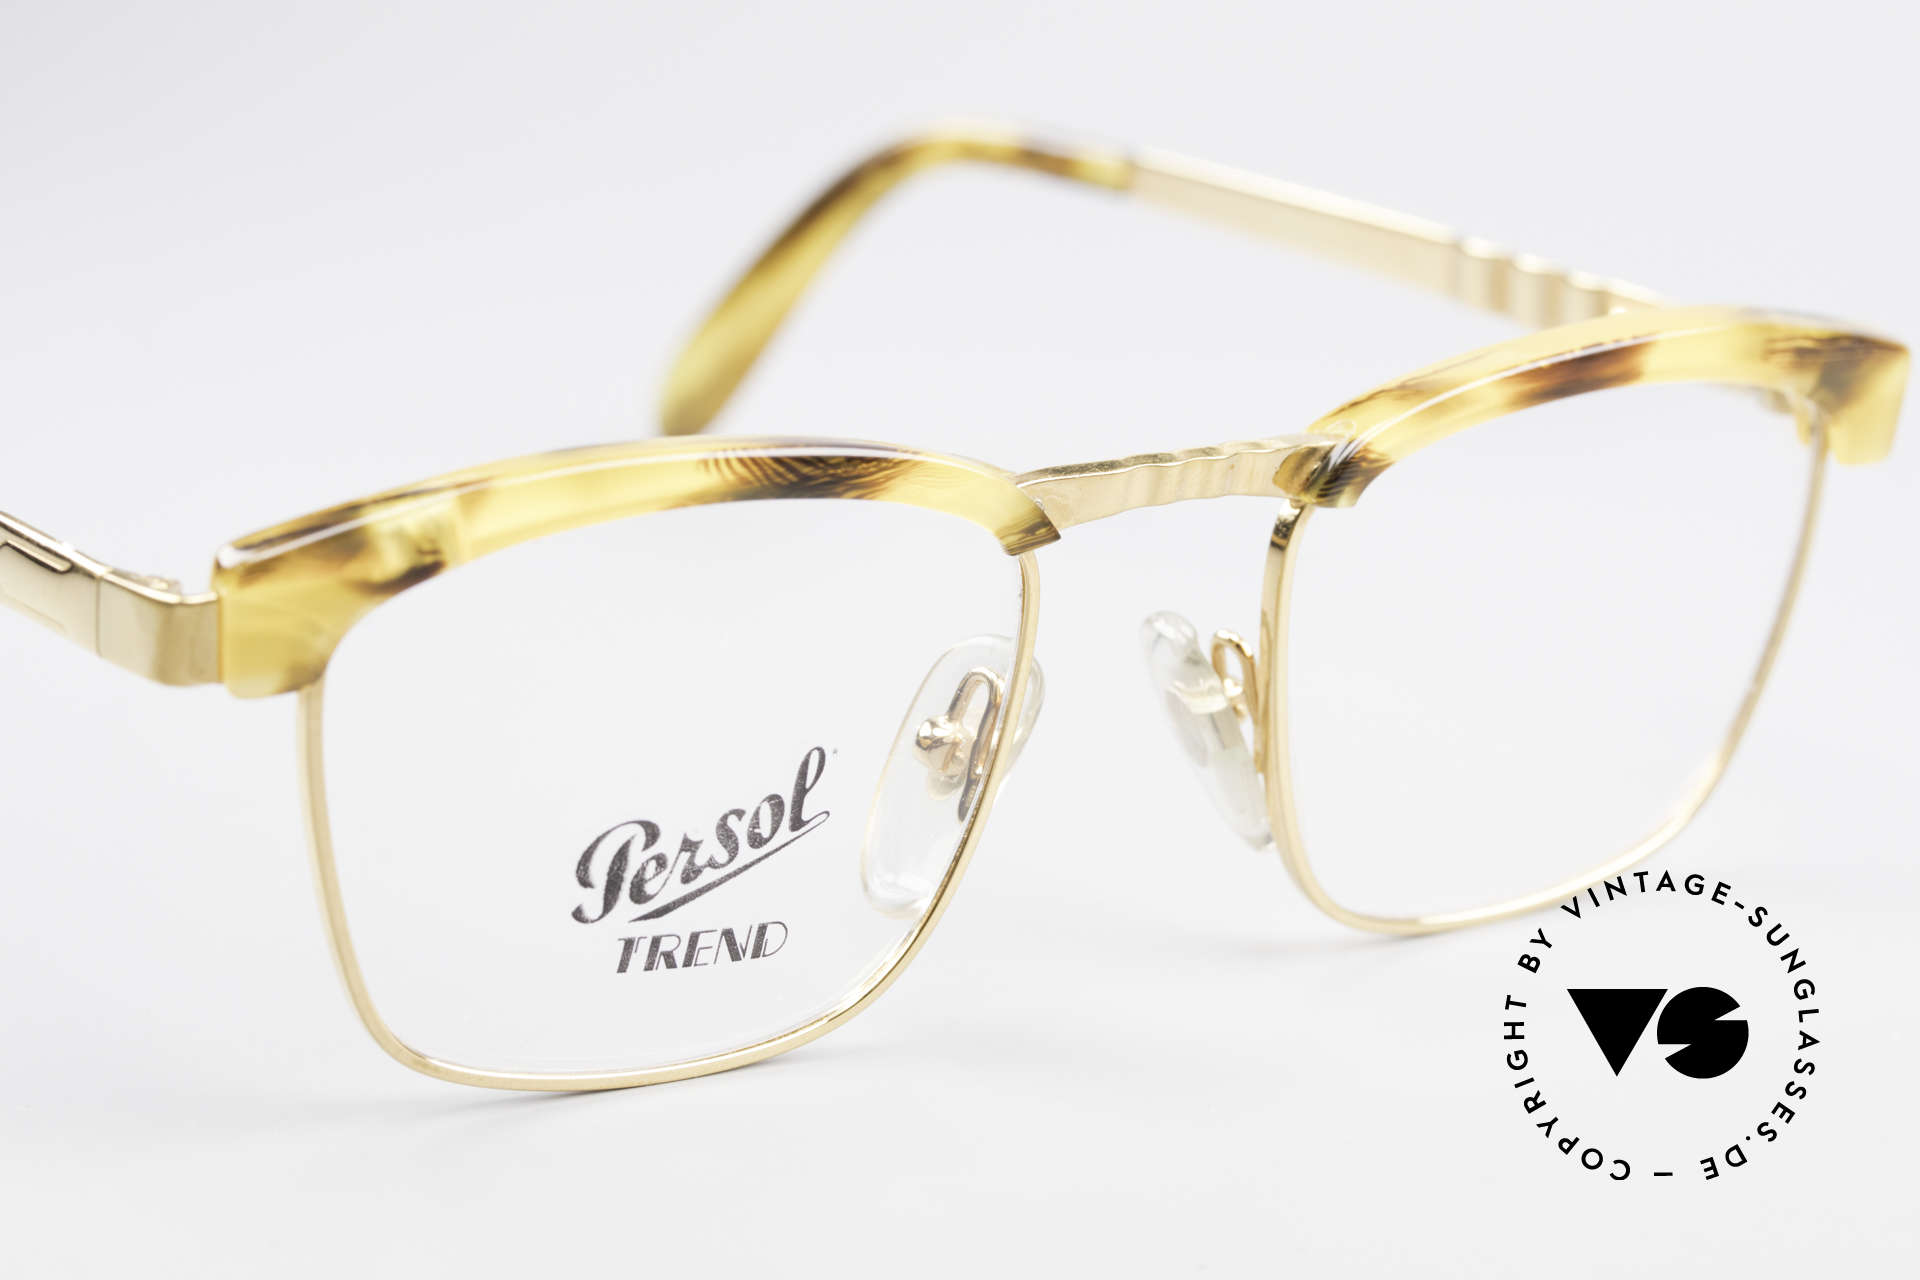 Persol Inge Ratti Gold Plated Vintage Glasses, never worn (like all our vintage Persol eyewear), Made for Men